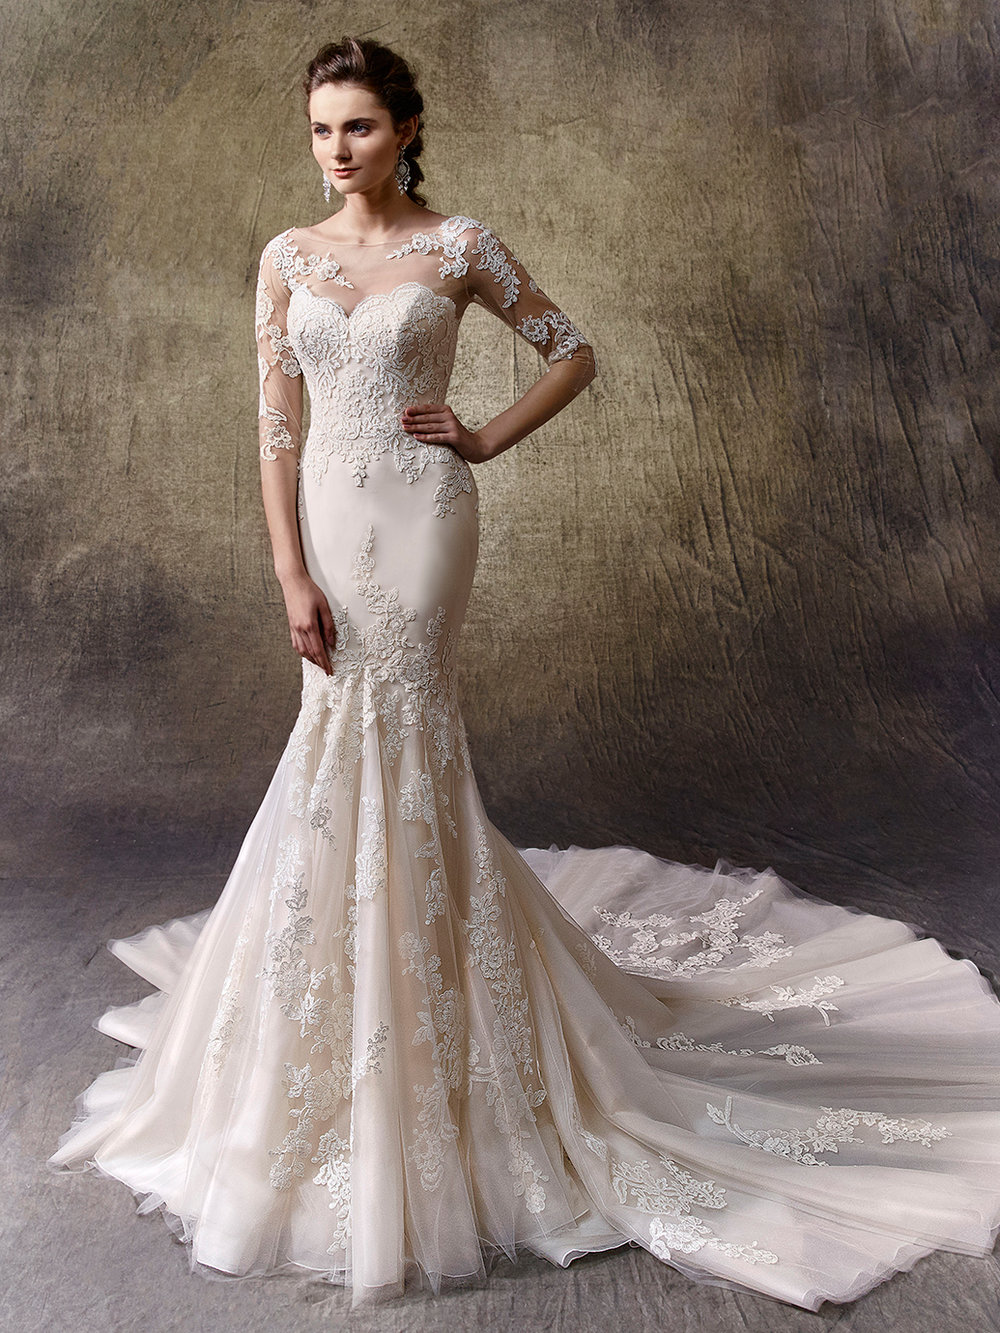 The Lindy gown from Enzoani is available at Bridal Extraordinaire in Kansas City.